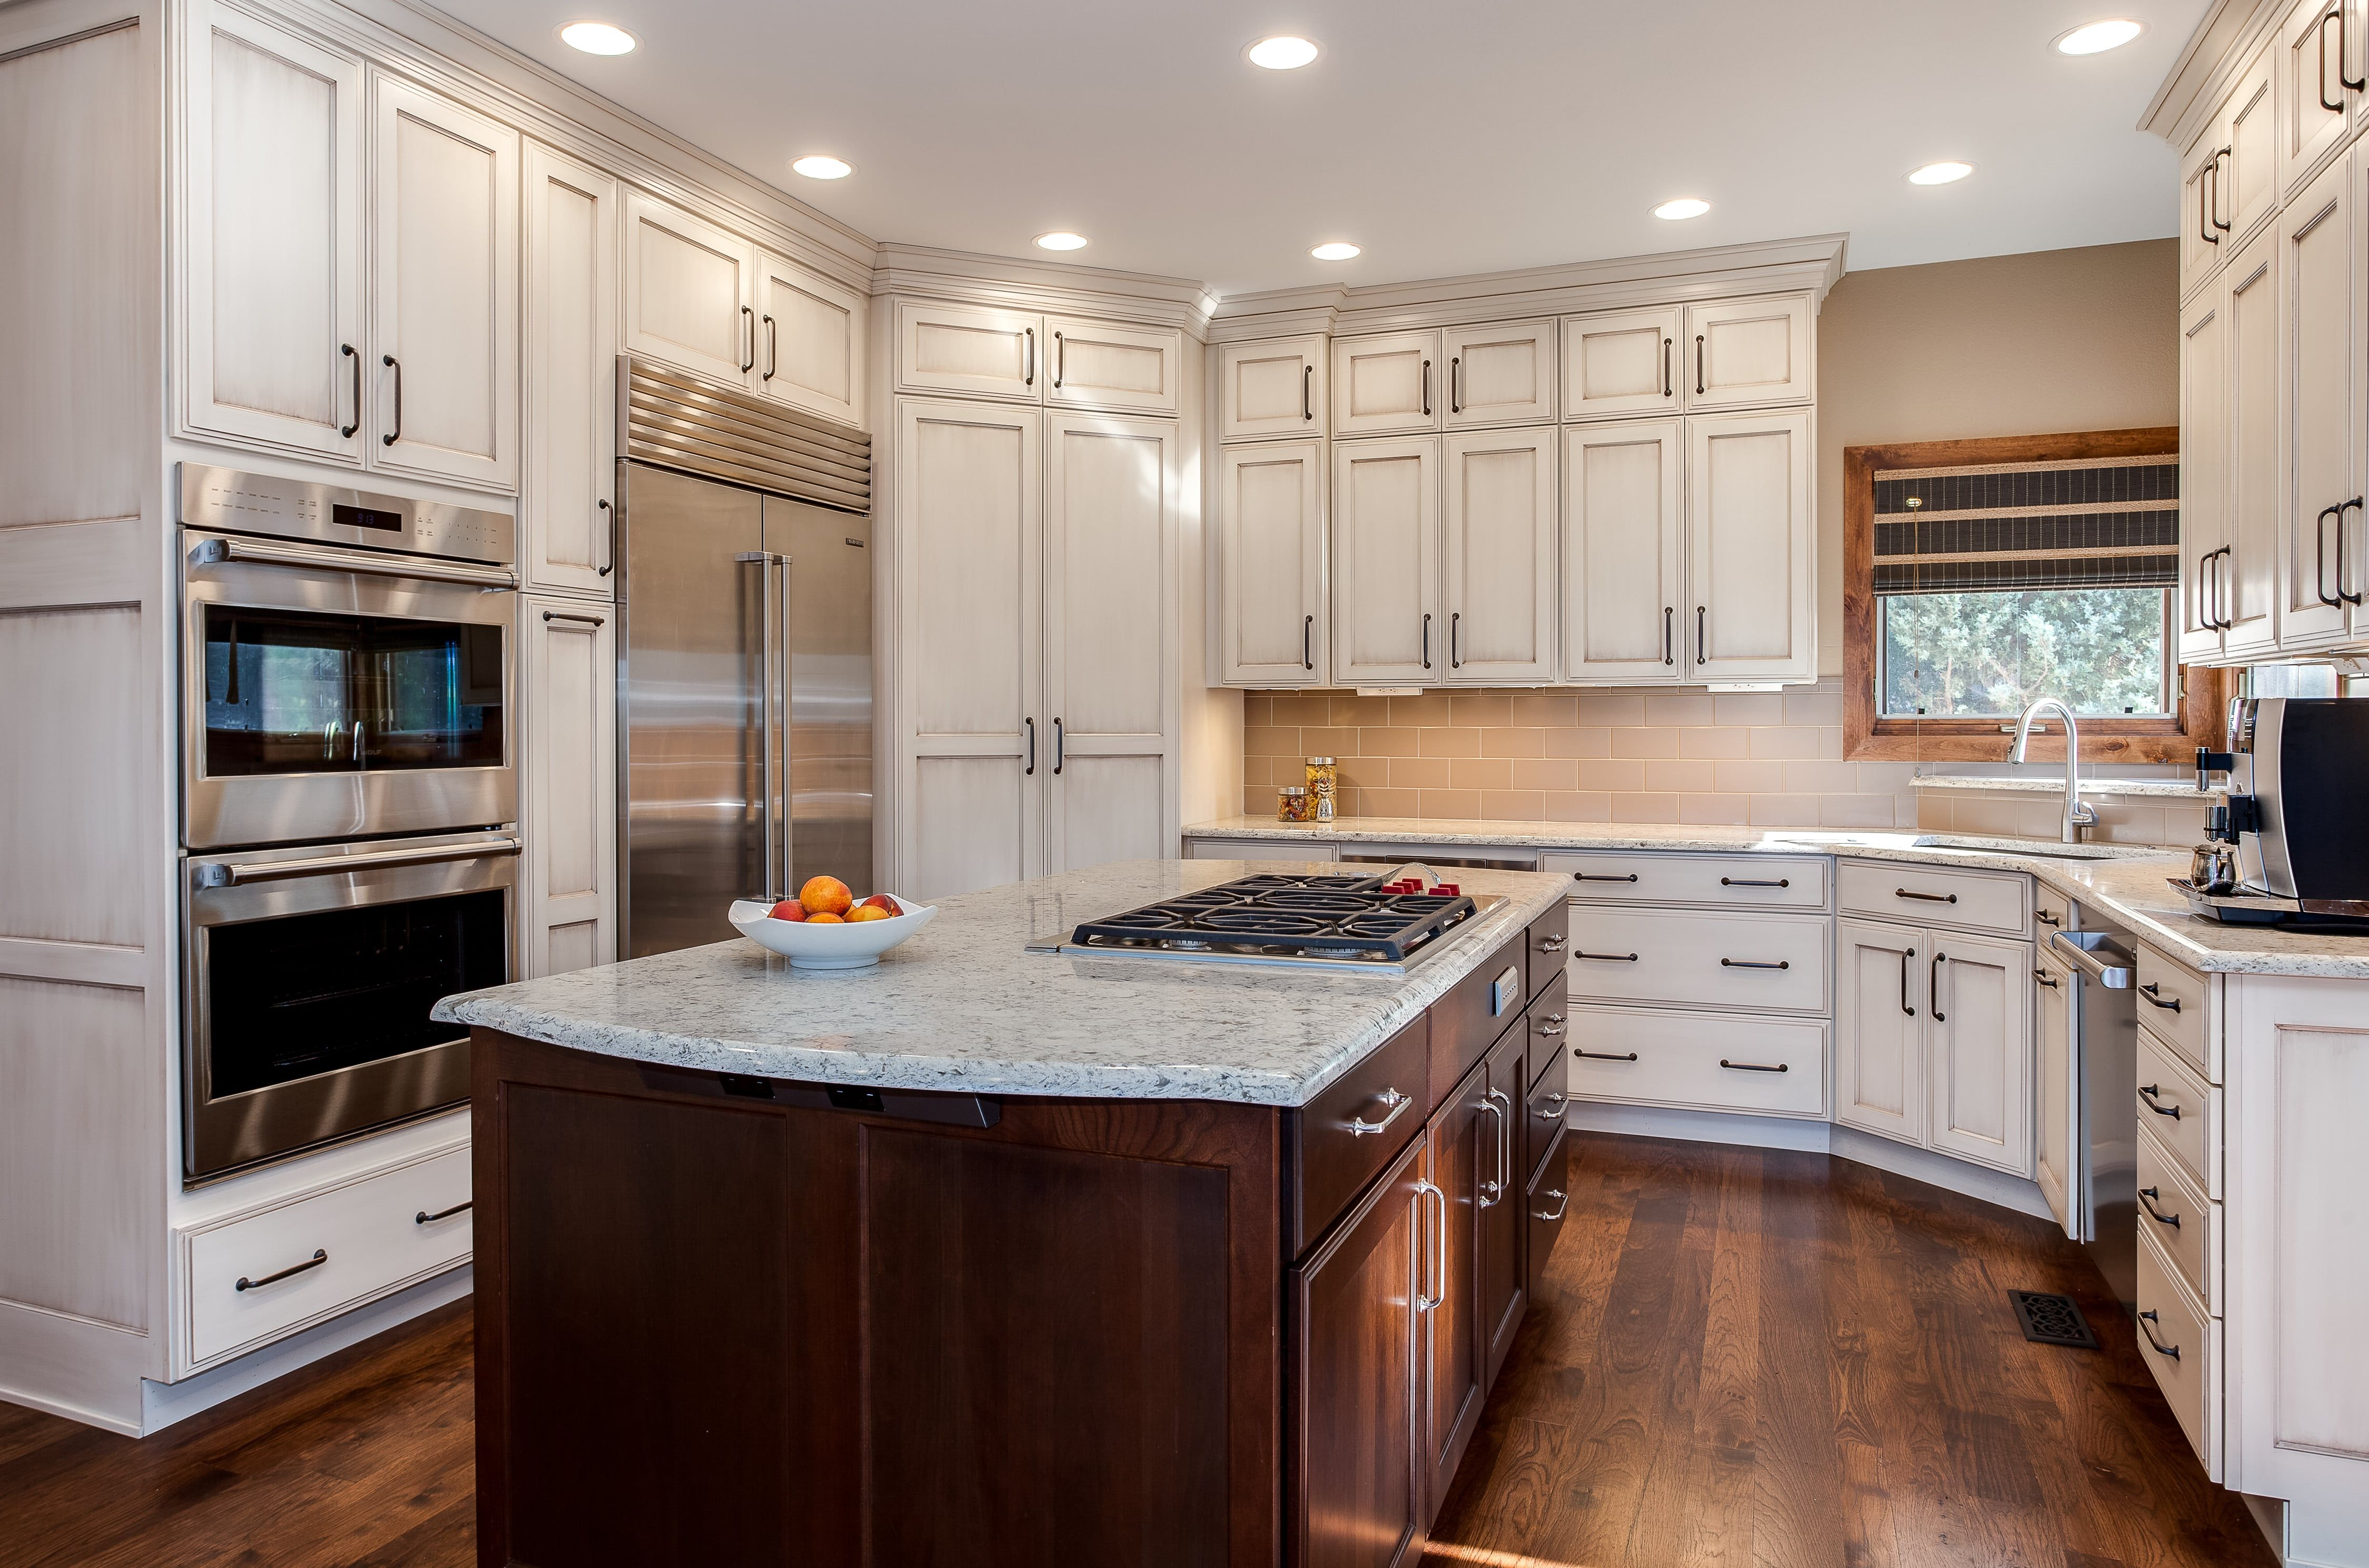 A Guide To Cabinet Terminology Answers To Your Questions About Cabinetry Styles And Options Https Www J Kitchen Design White Kitchen Design Rustic Kitchen